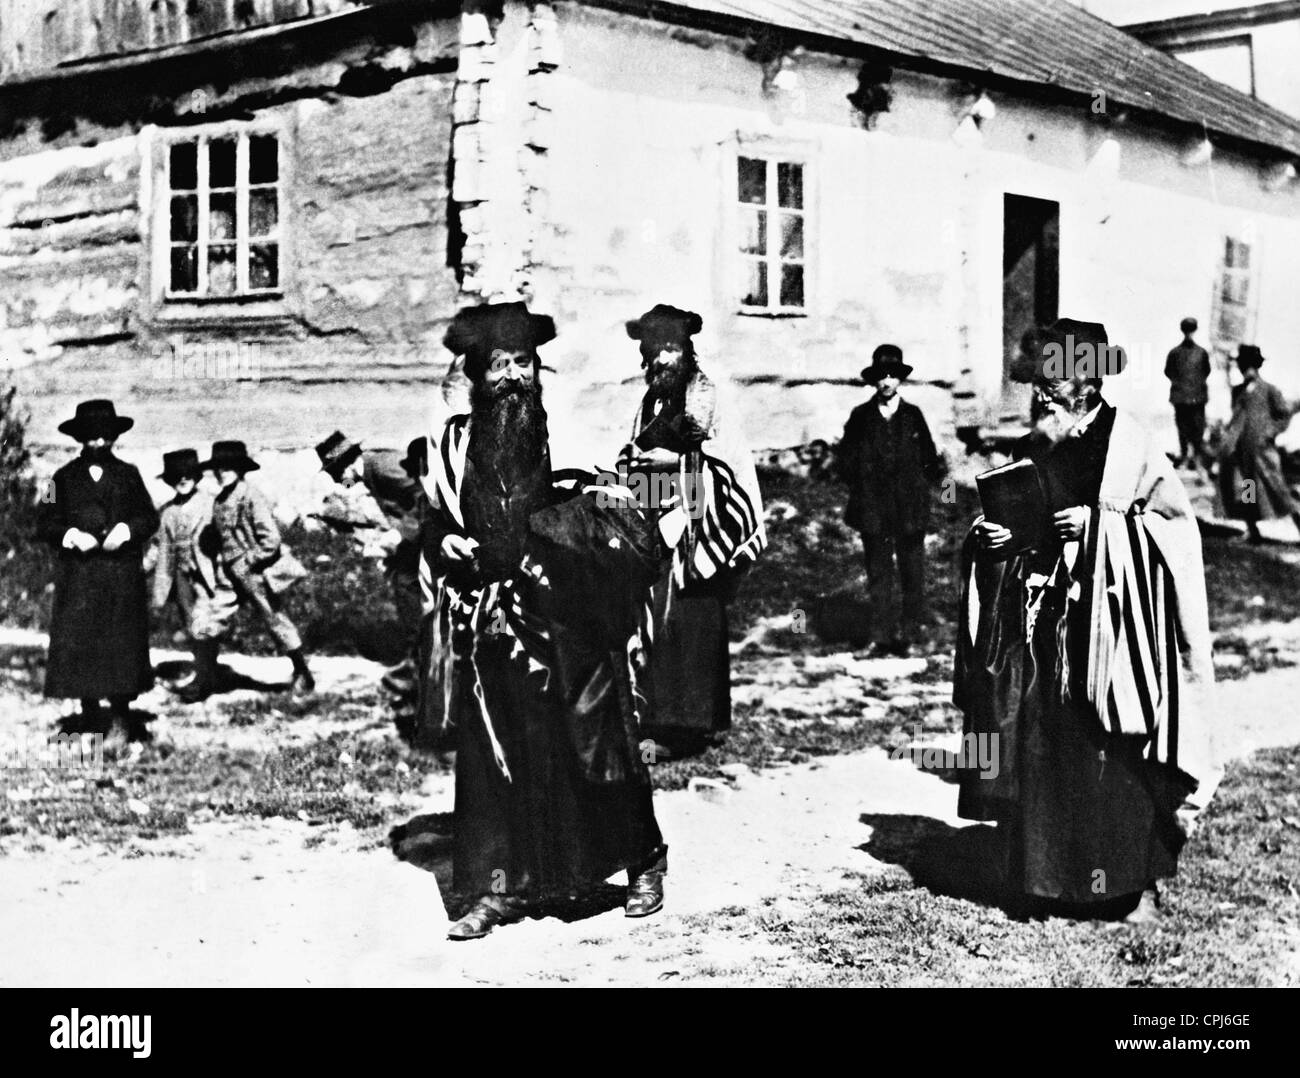 Jewish school in Poland, 1914 - Stock Image